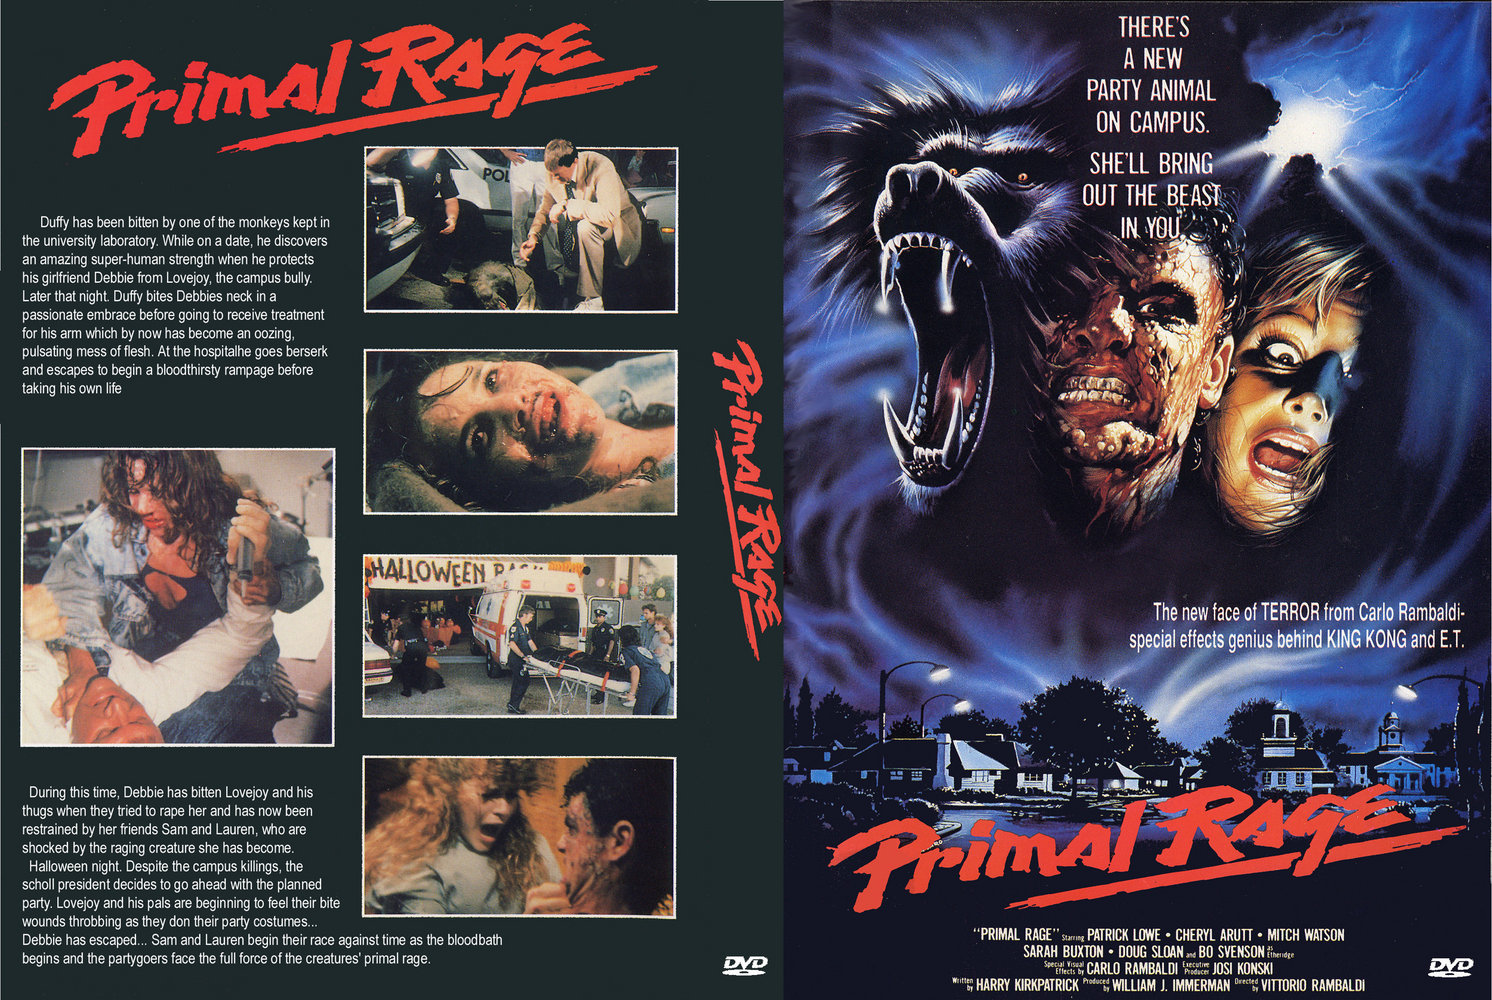 The Horrors of Halloween: PRIMAL RAGE (1988) Posters, Clips and ...